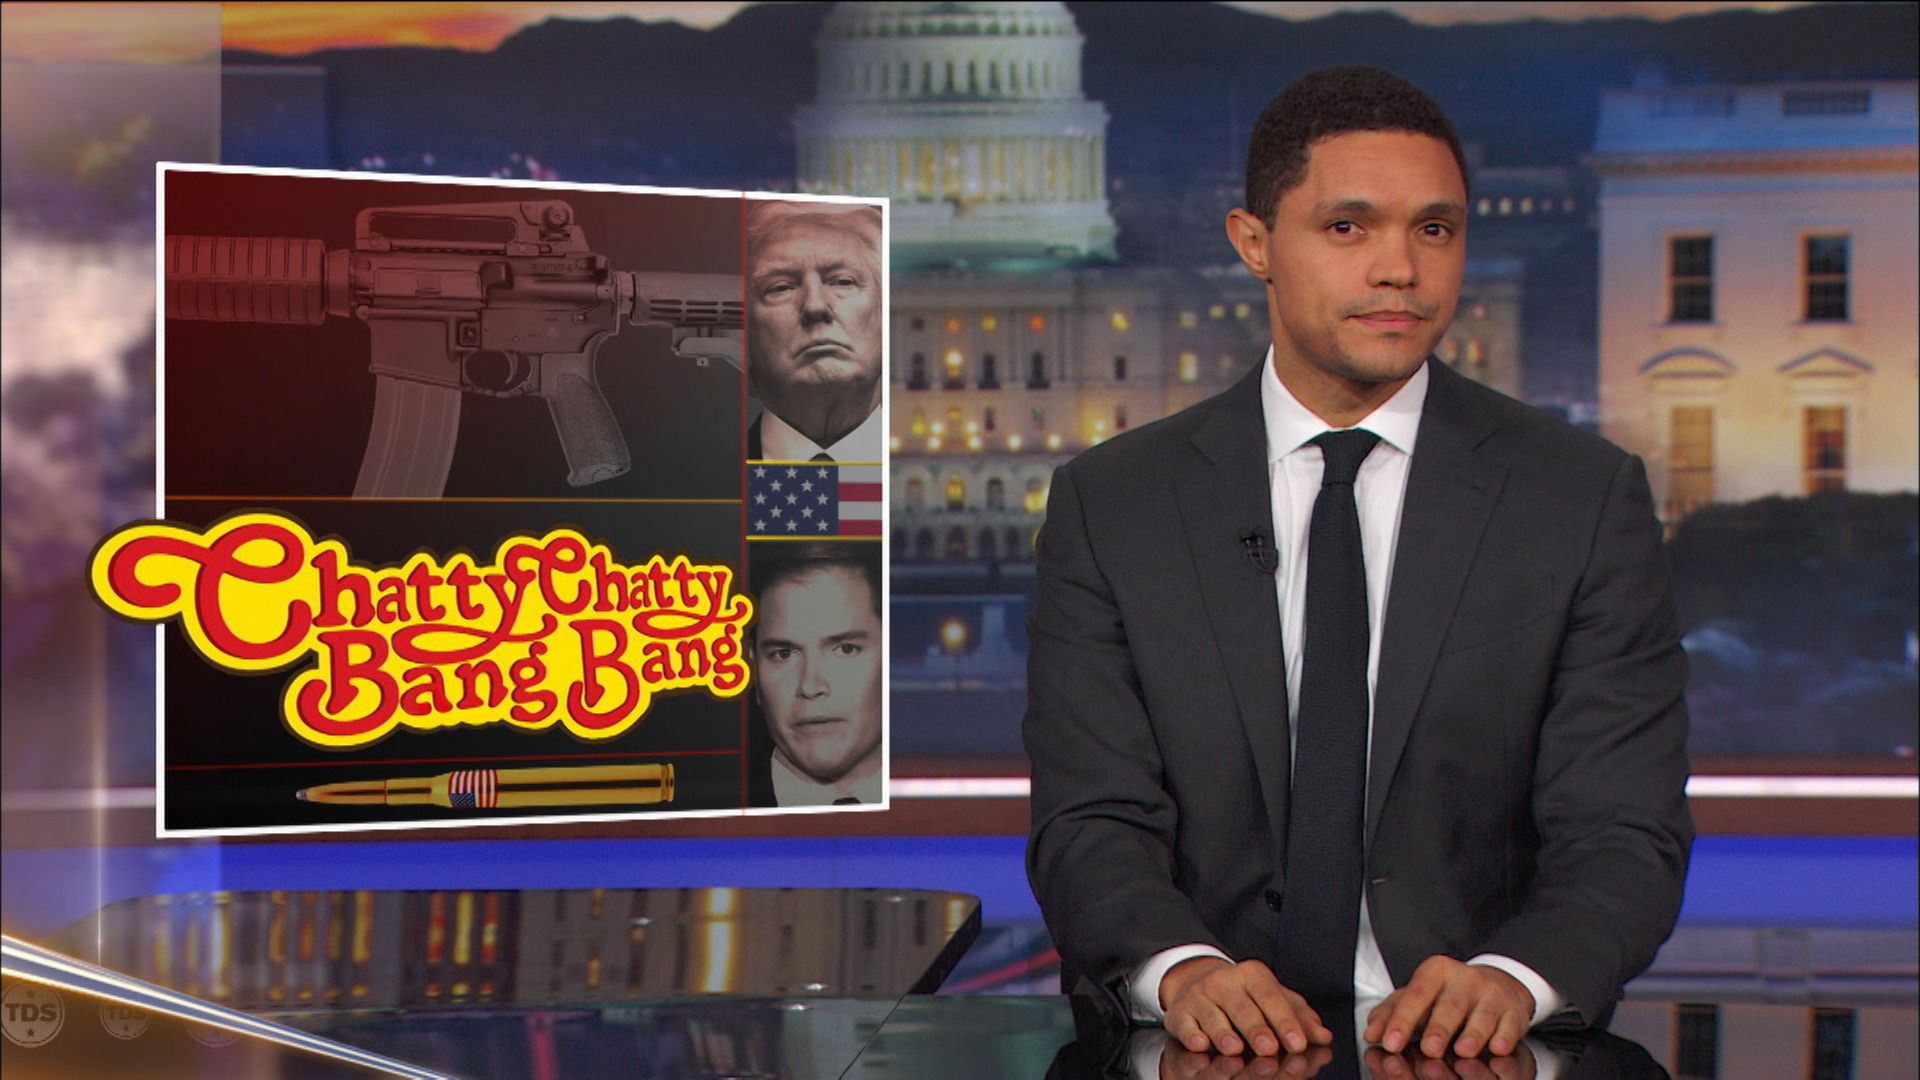 The Daily Show with Trevor Noah - Extended - February 22, 2018 - Lupita Nyong'o   Comedy Central